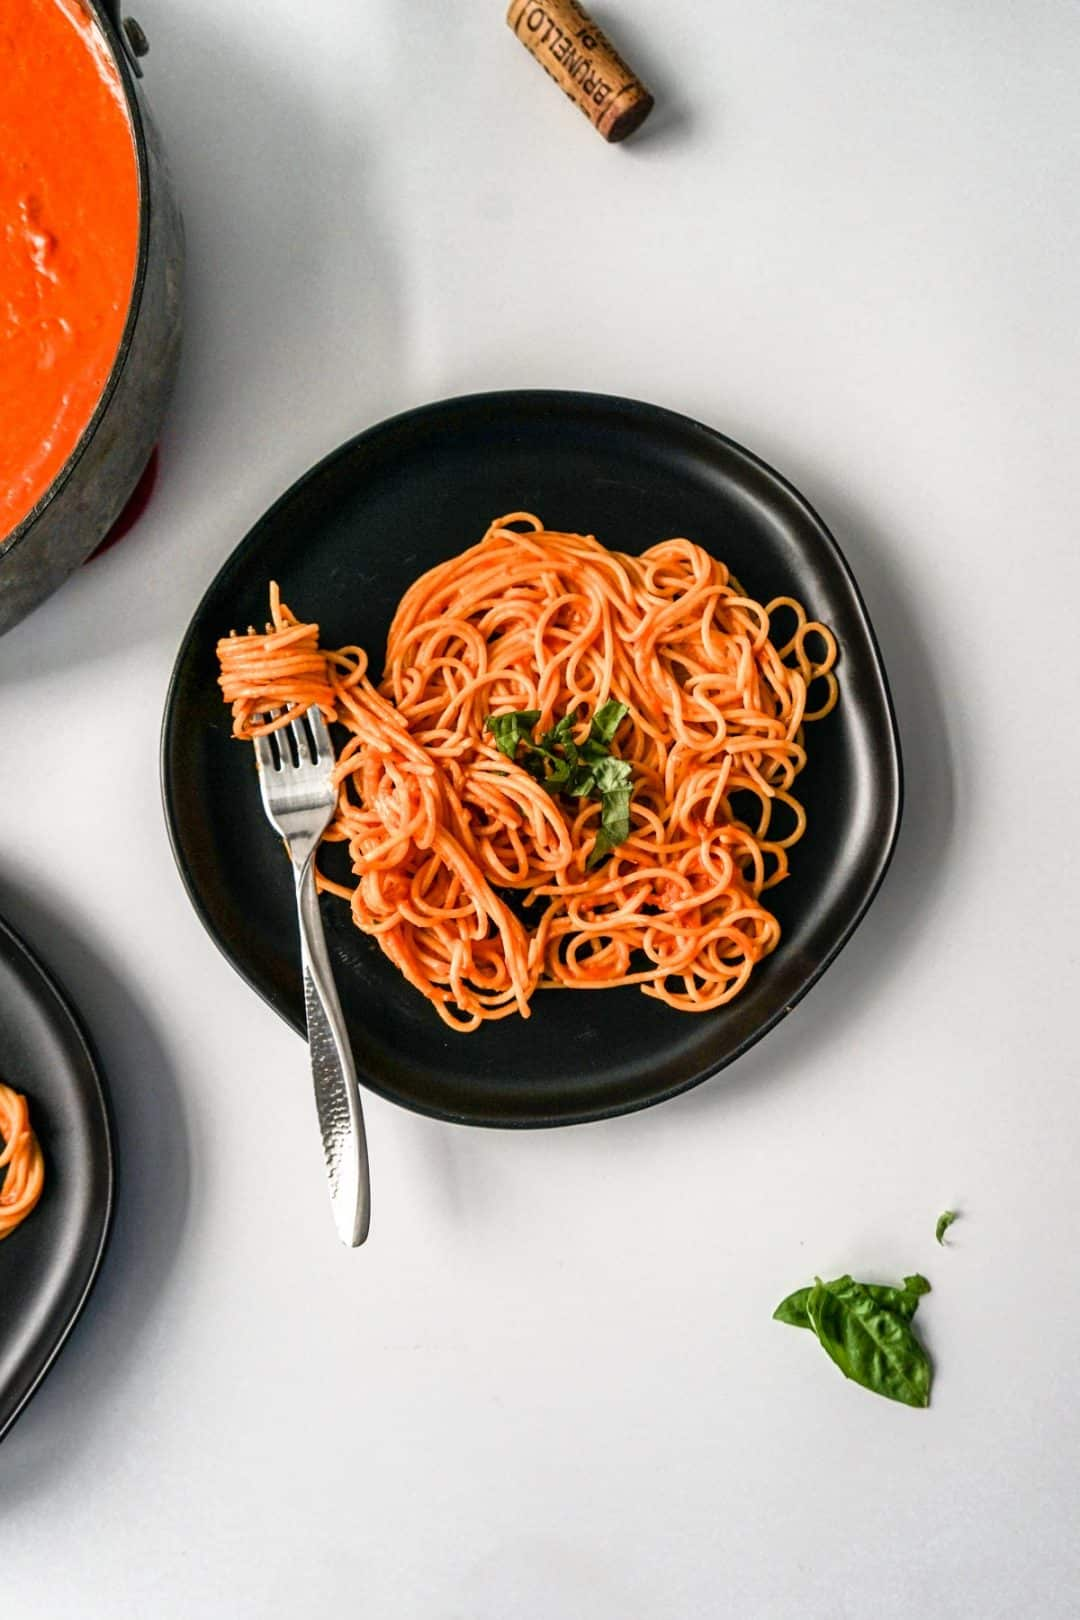 Plate of spaghetti with creamy tomato sauce and another plate and pan of more sauce to the left.  A wine cork and basil leaves are placed around the scene.